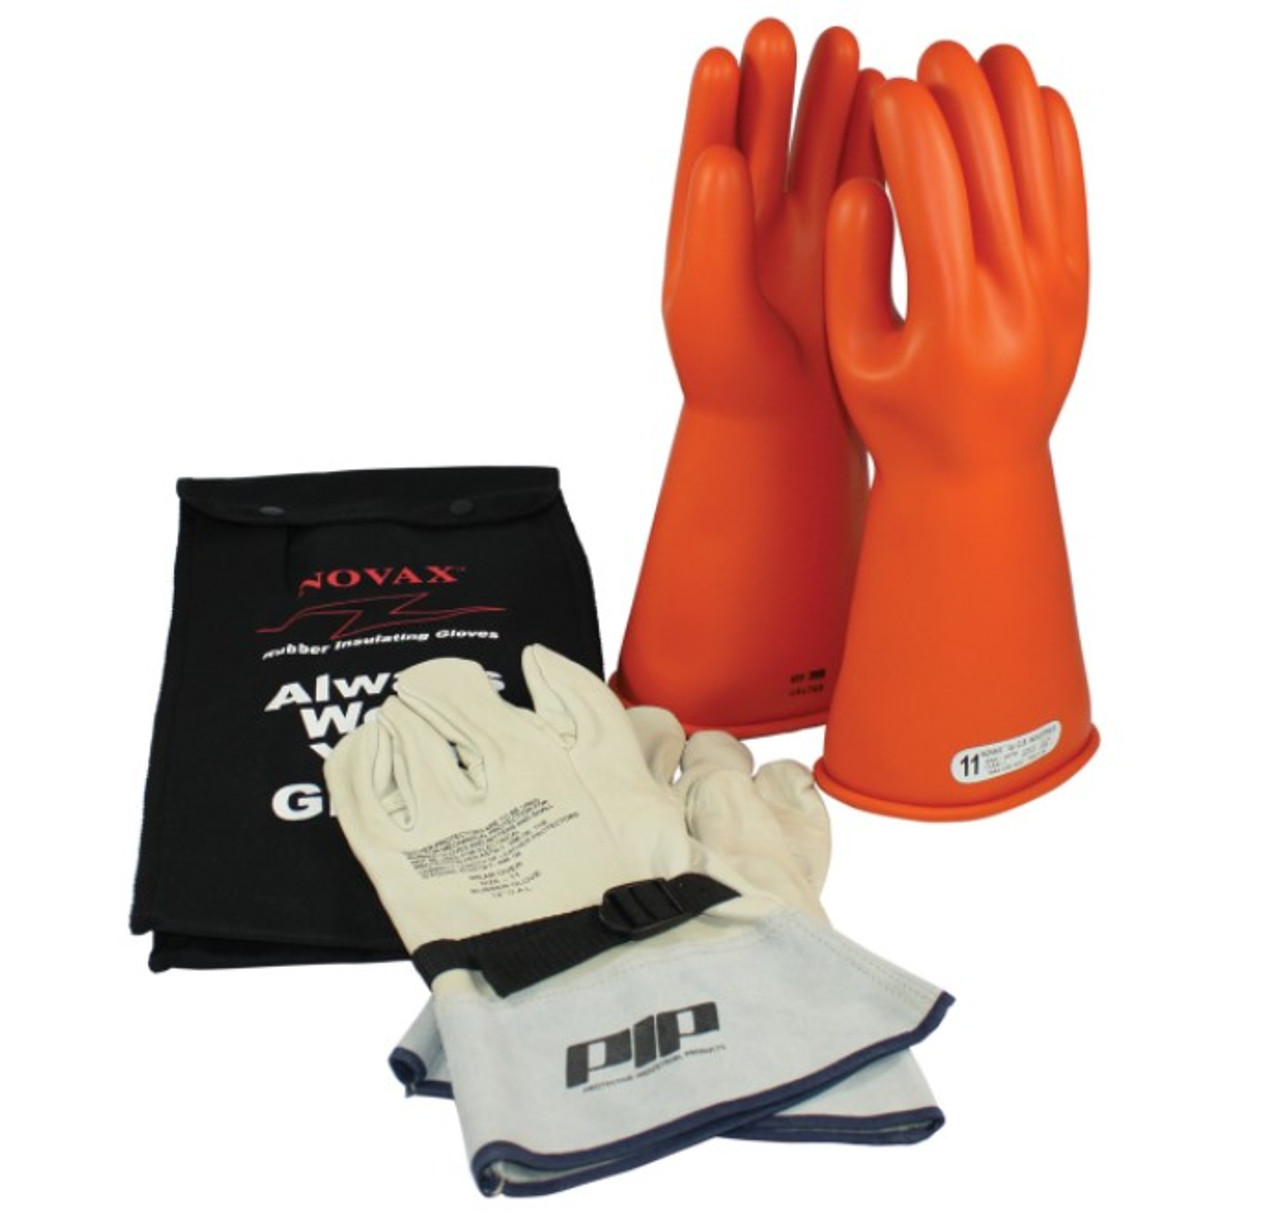 Class 1 Electrical Safety Kit, Orange